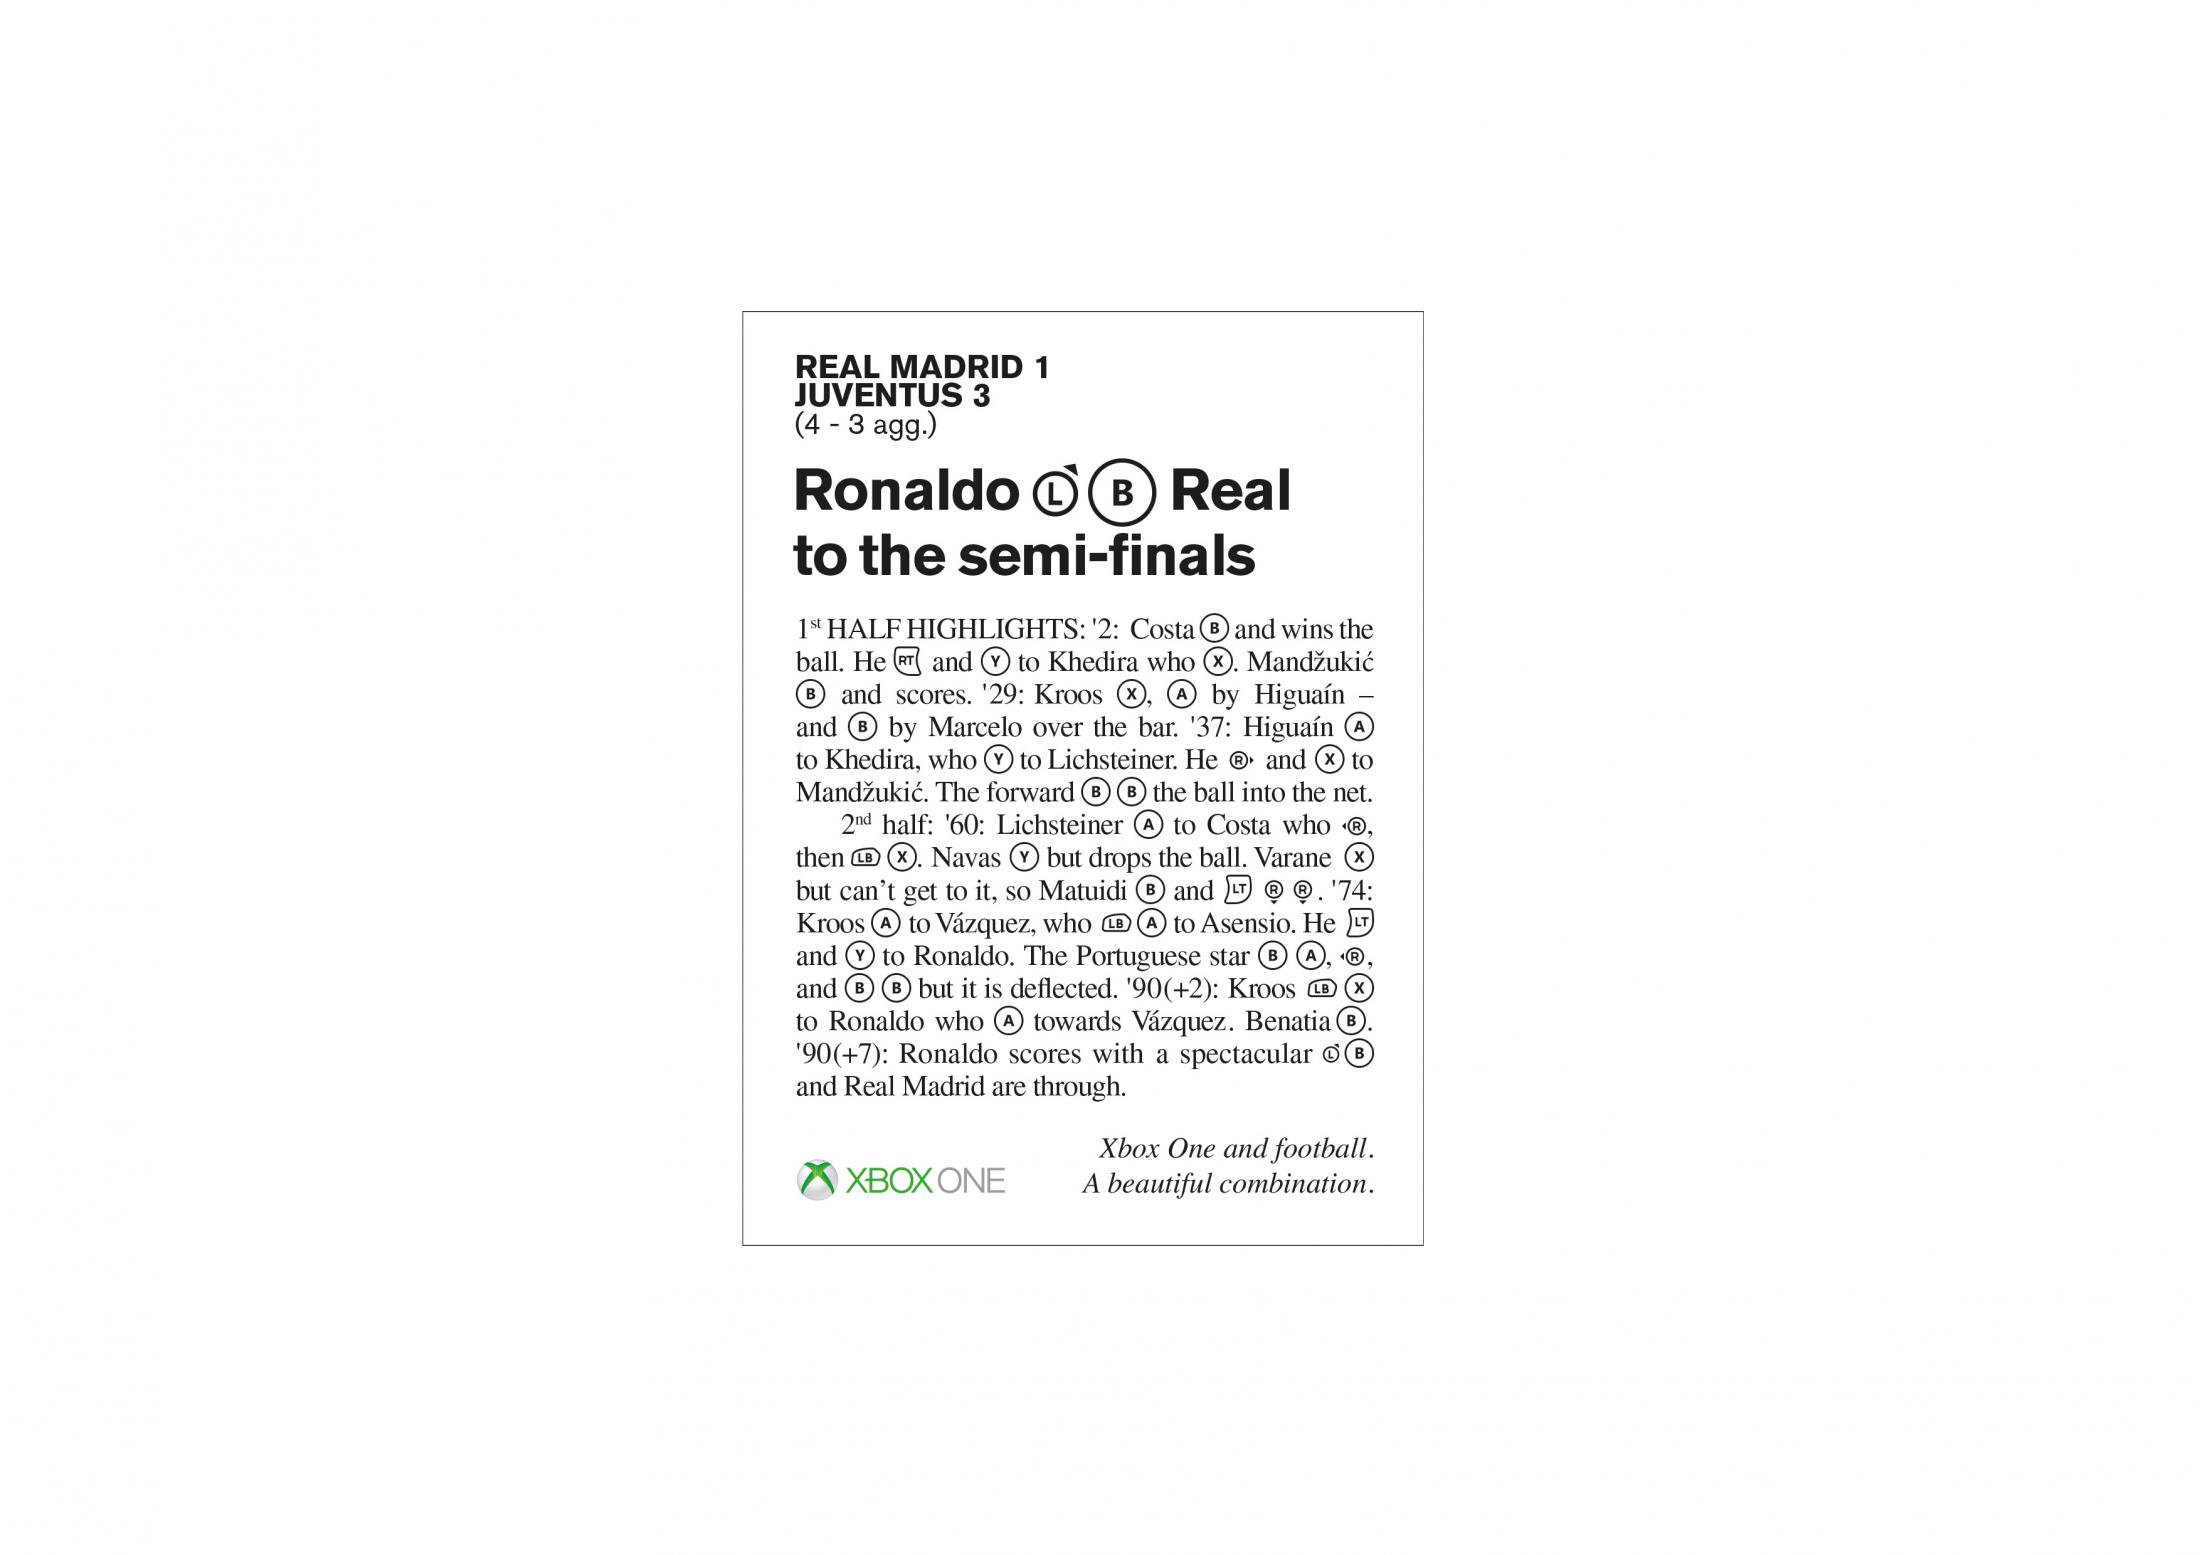 Xbox Print Ad - Champions League Match Report